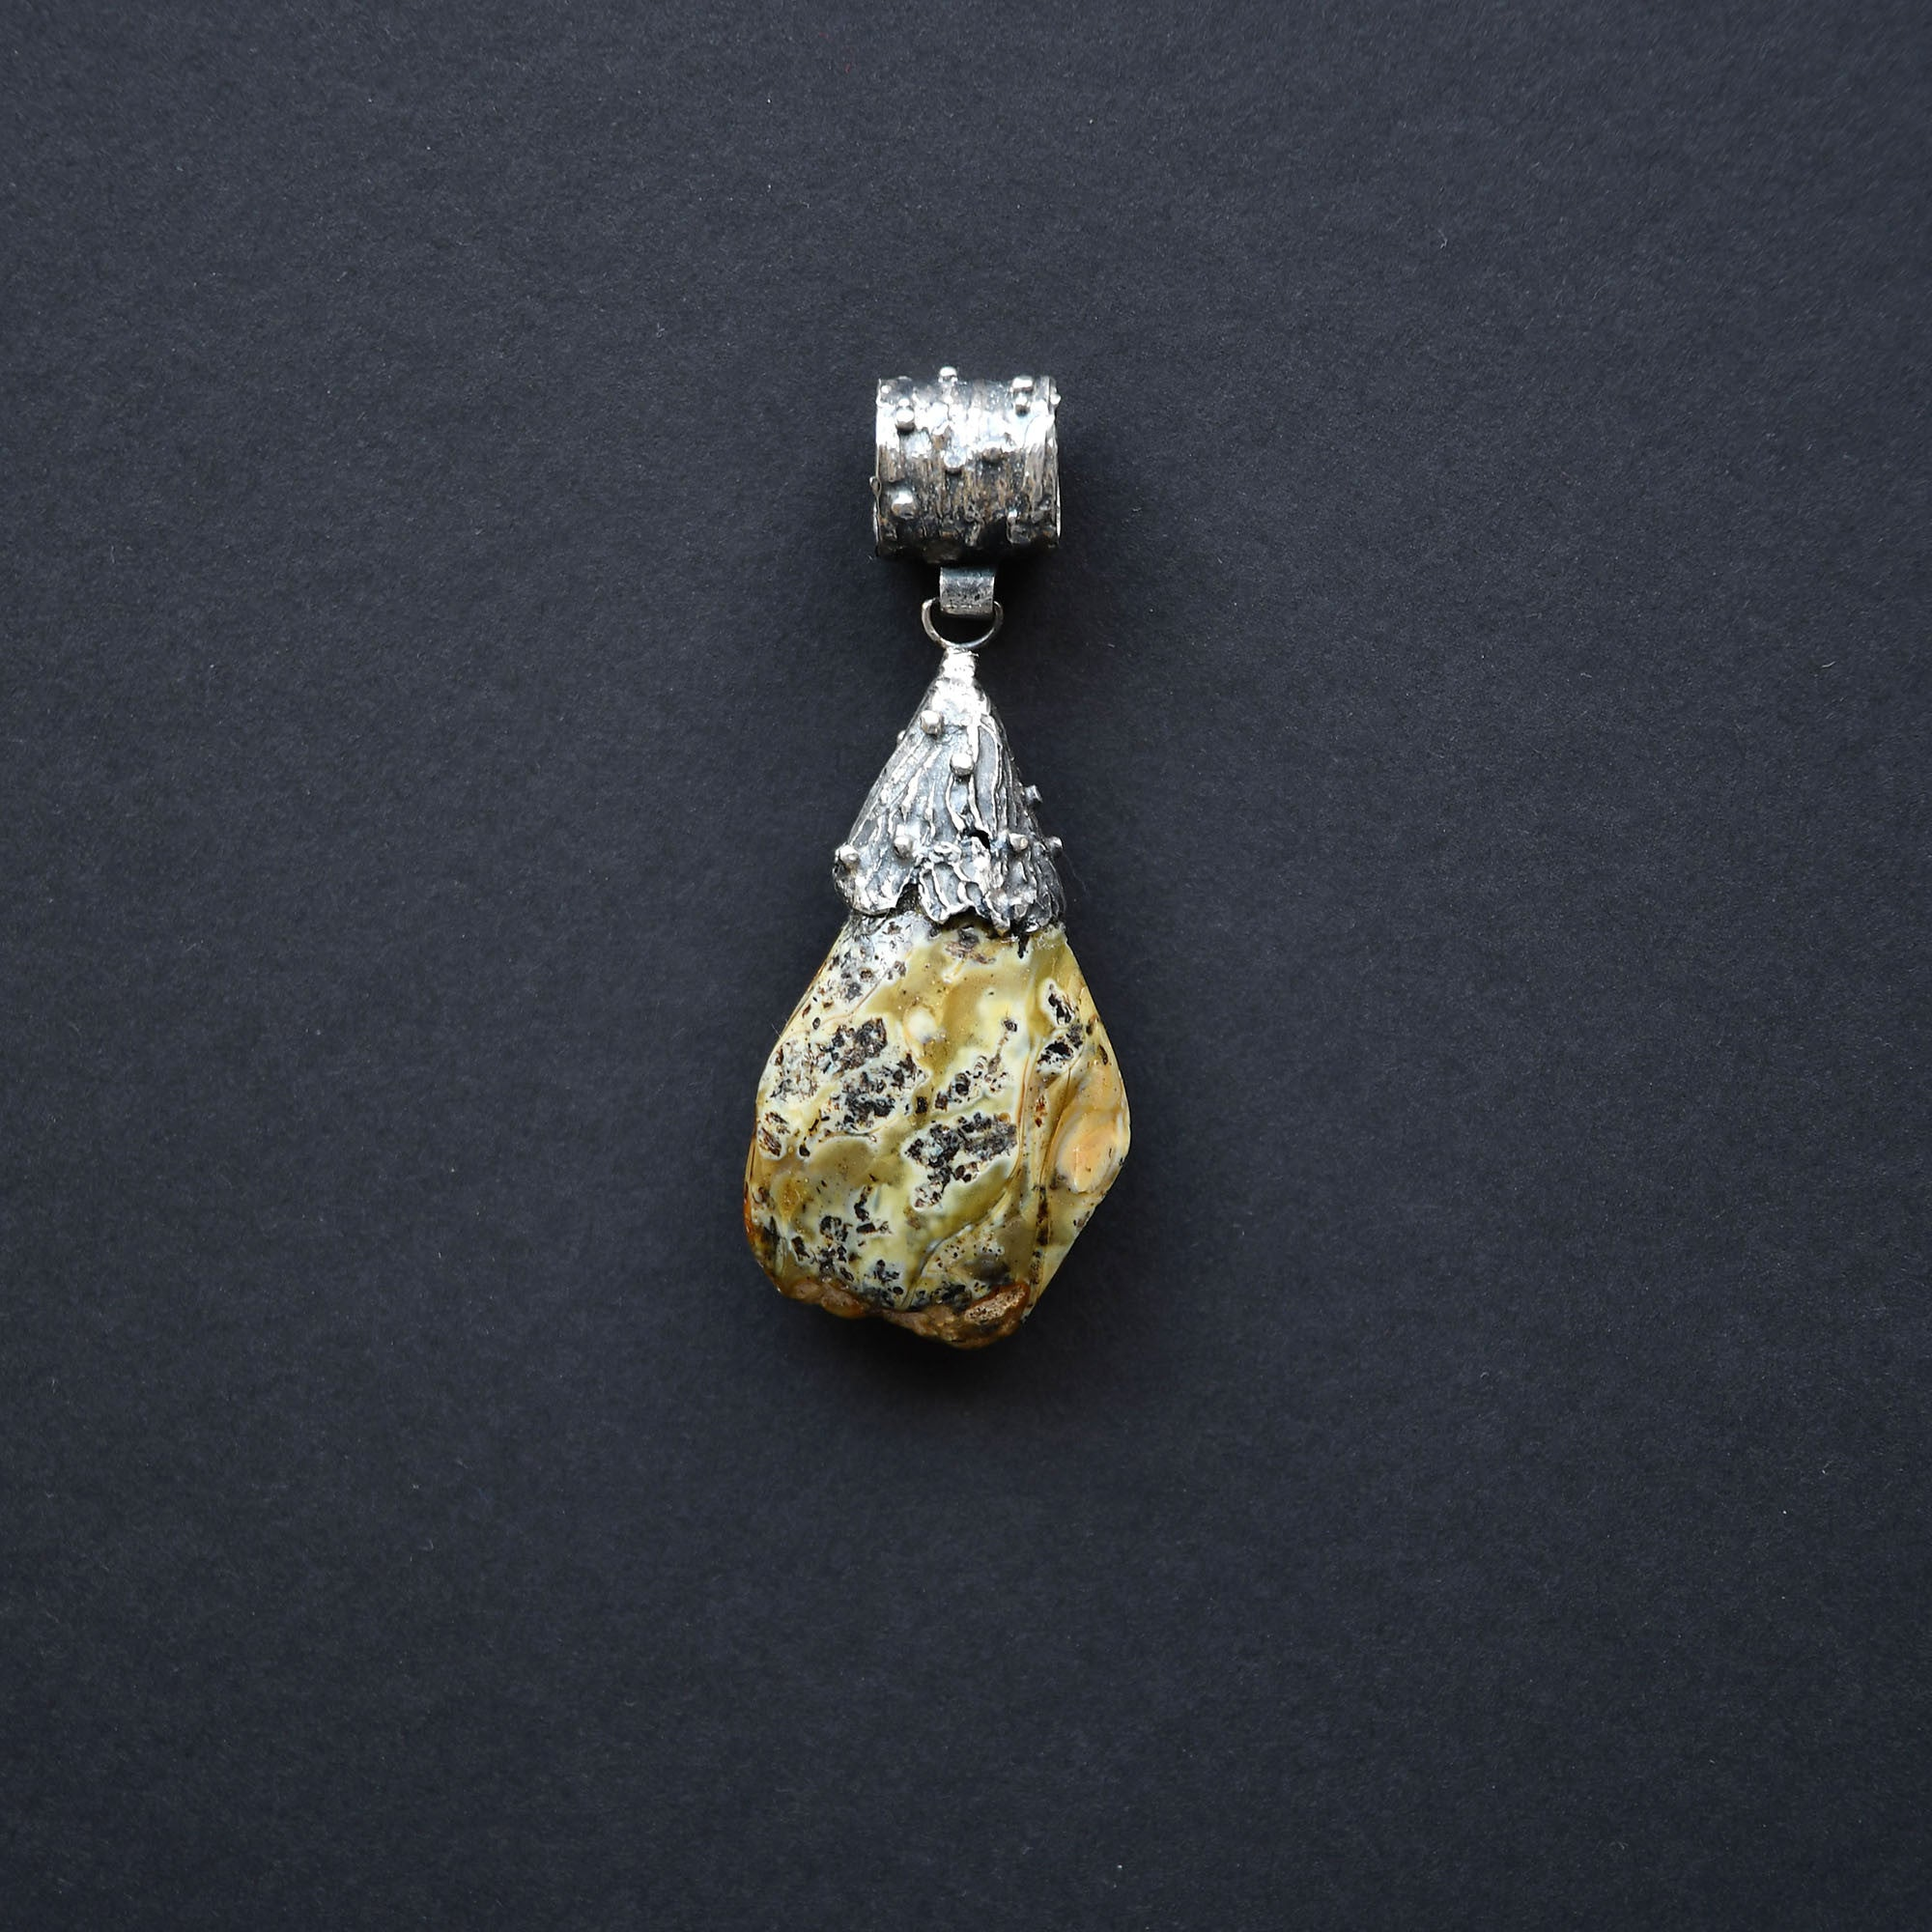 A drop-shaped green amber pendant with black and blue speckles